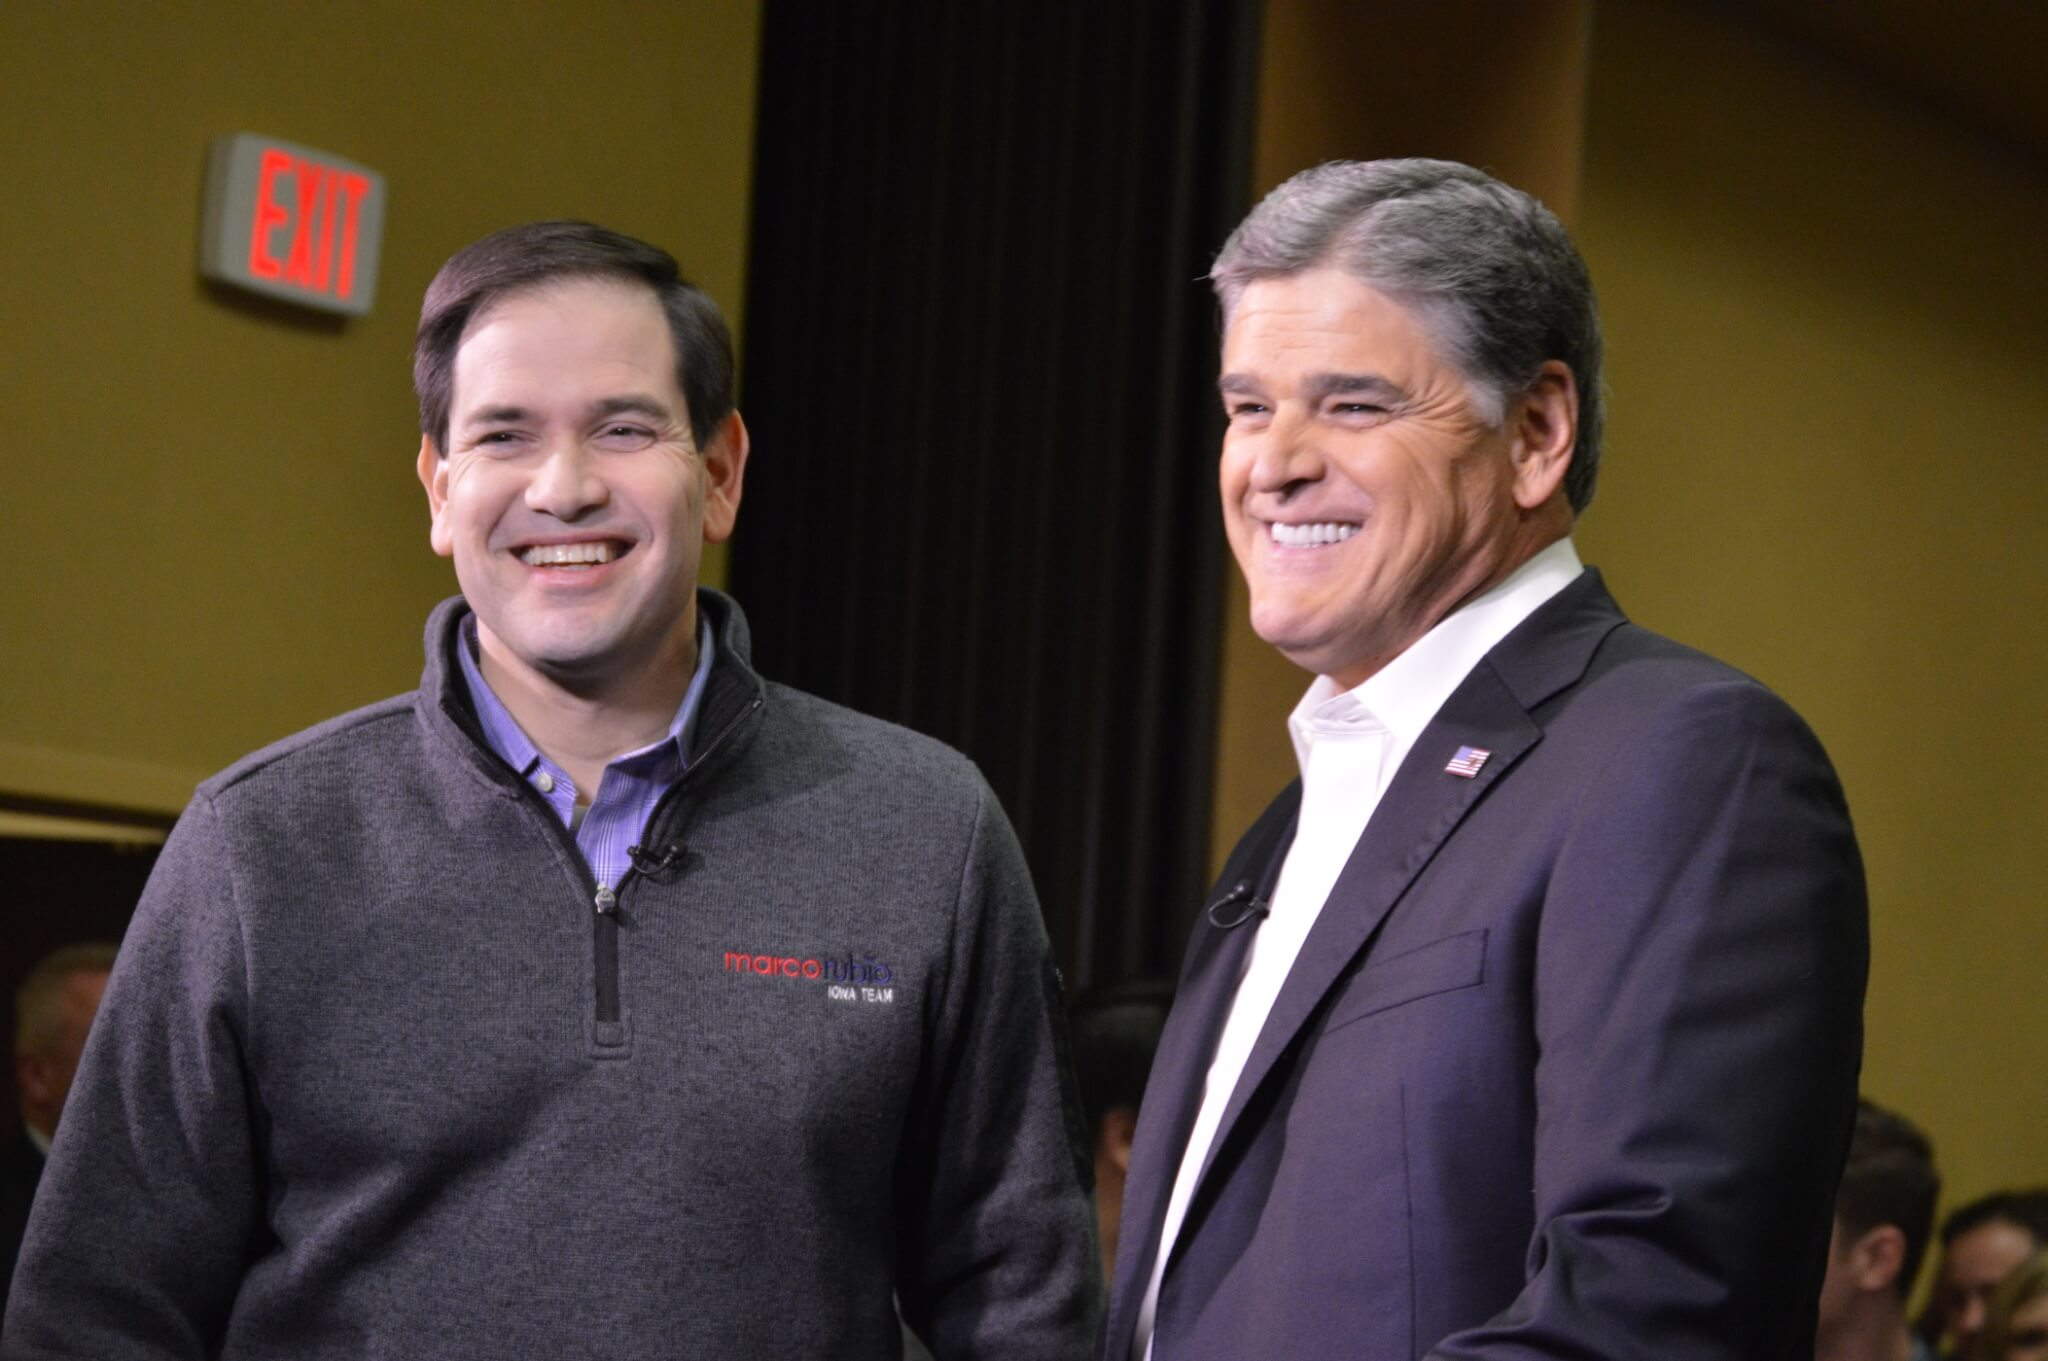 Rubio with Sean Hannity before his event